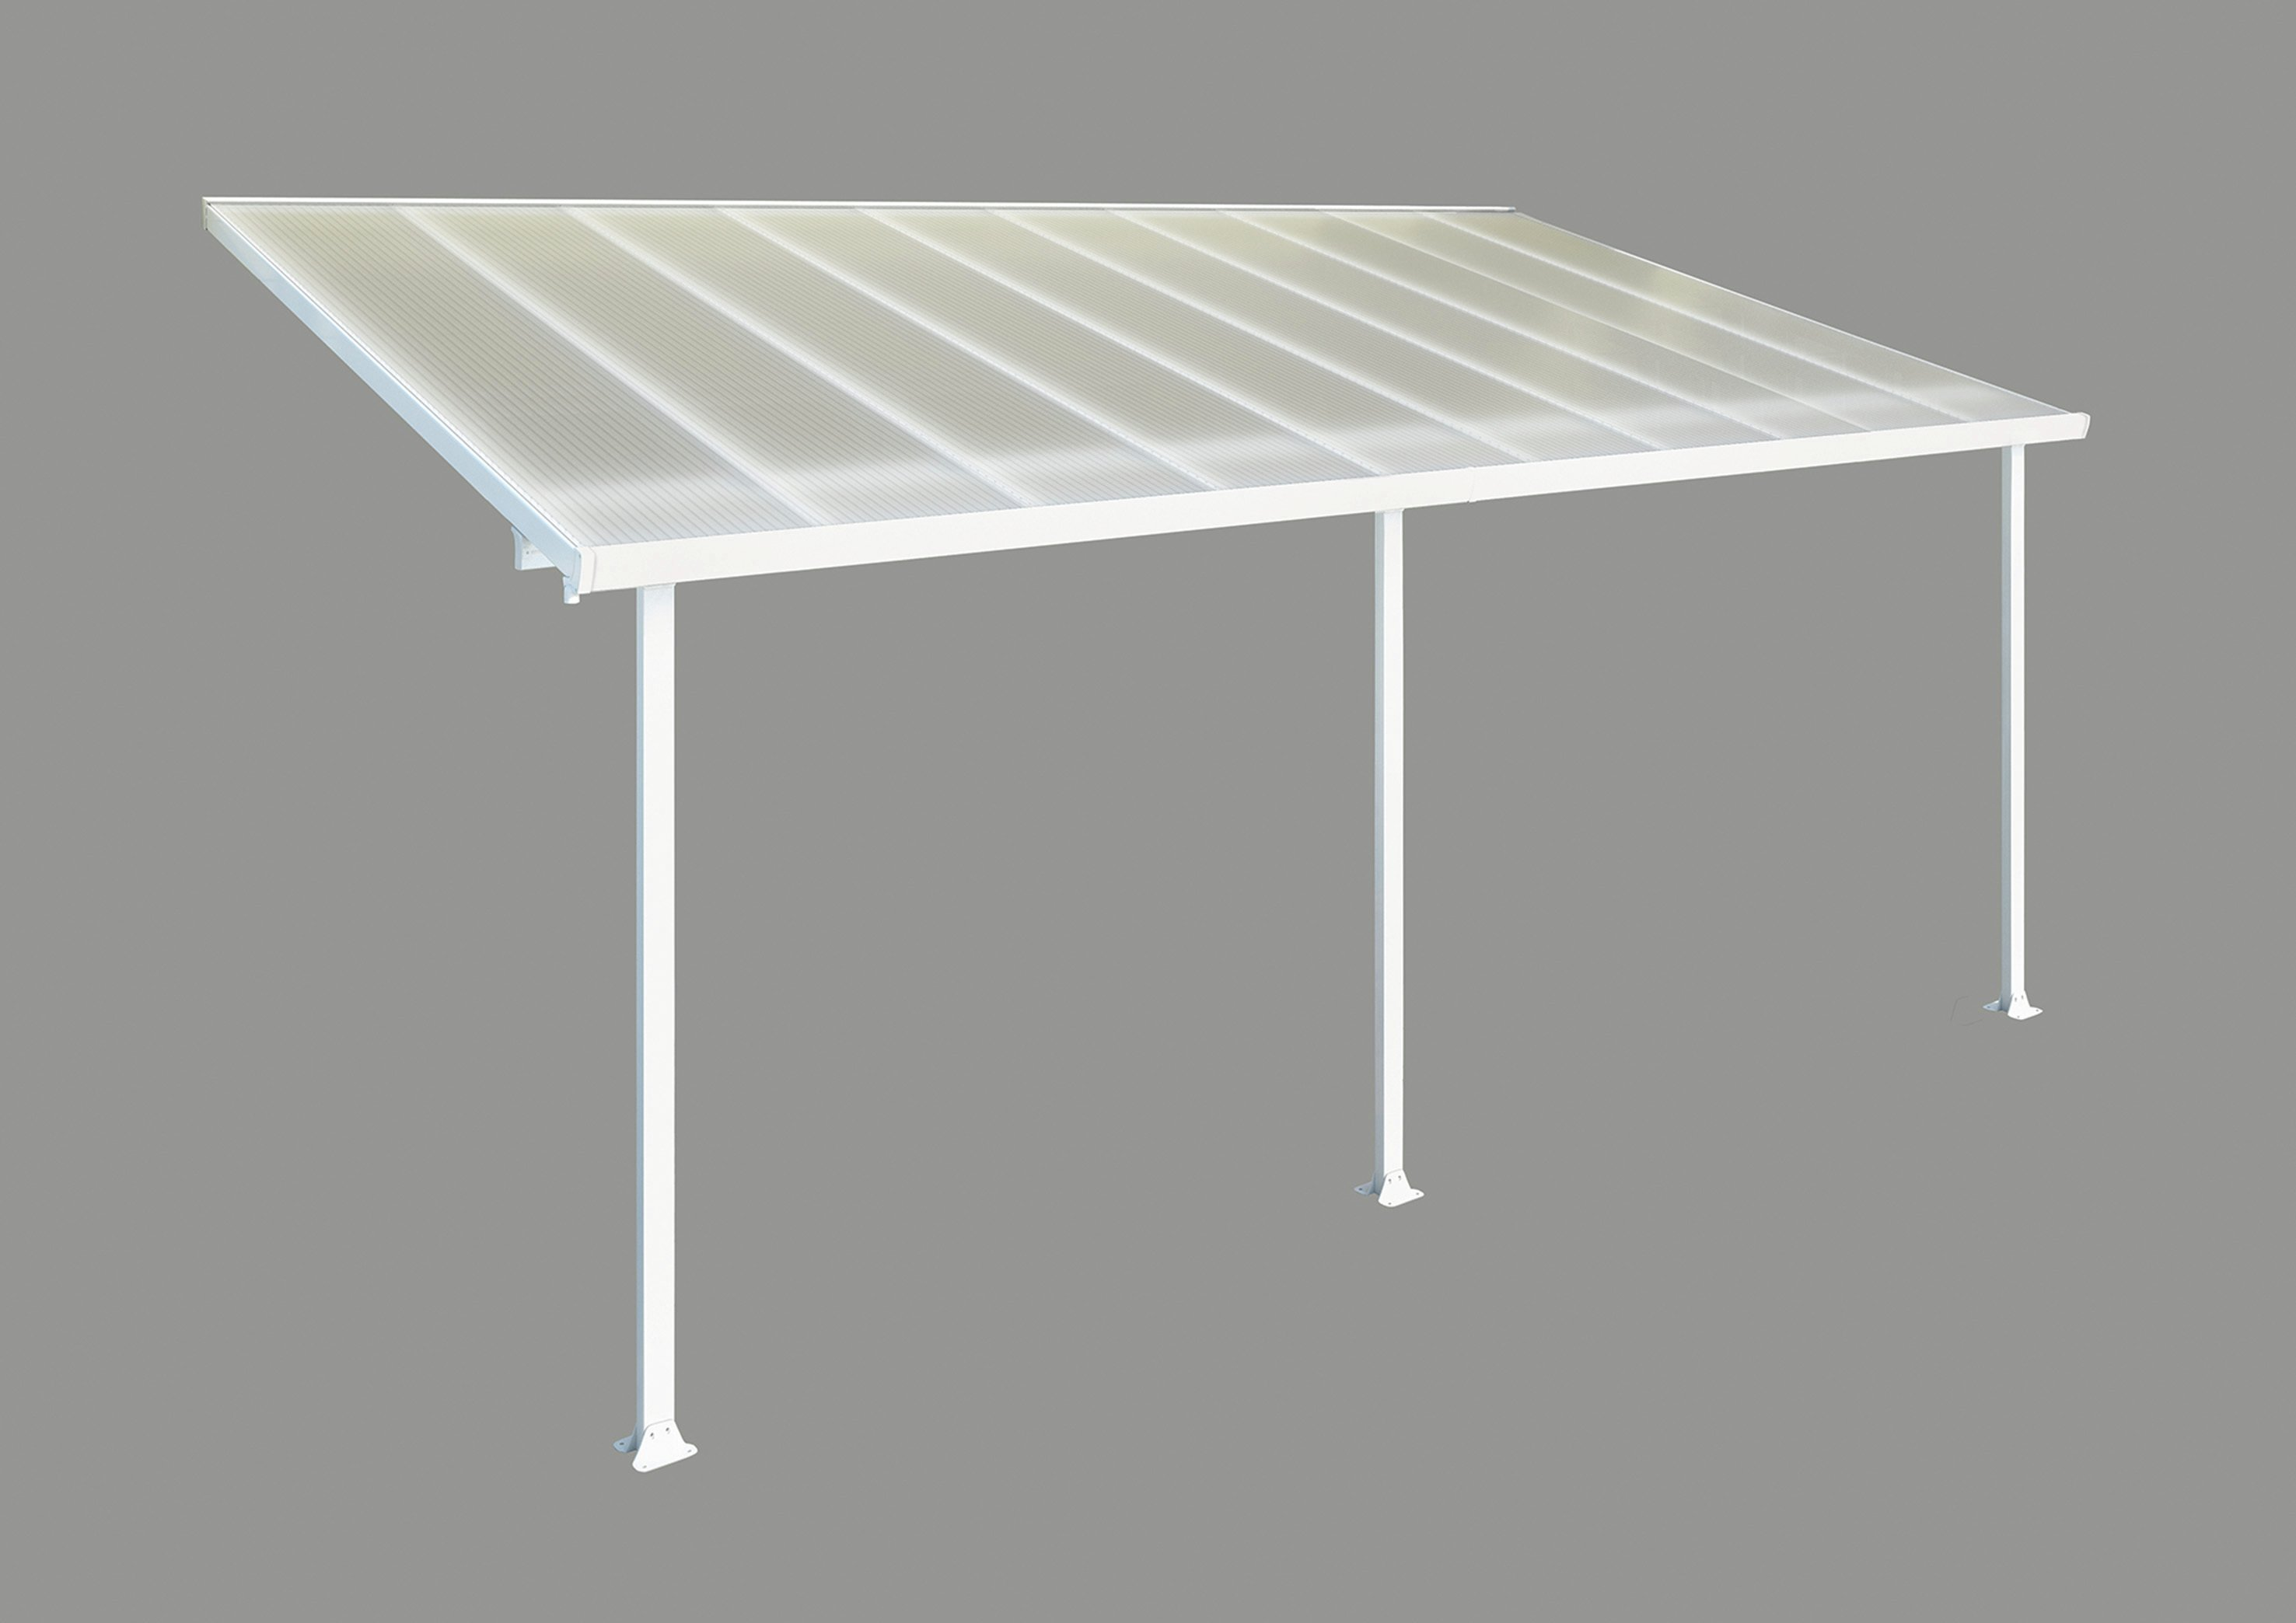 Palram Feria White/Clear Patio Cover 3 x 6.1. lowest price